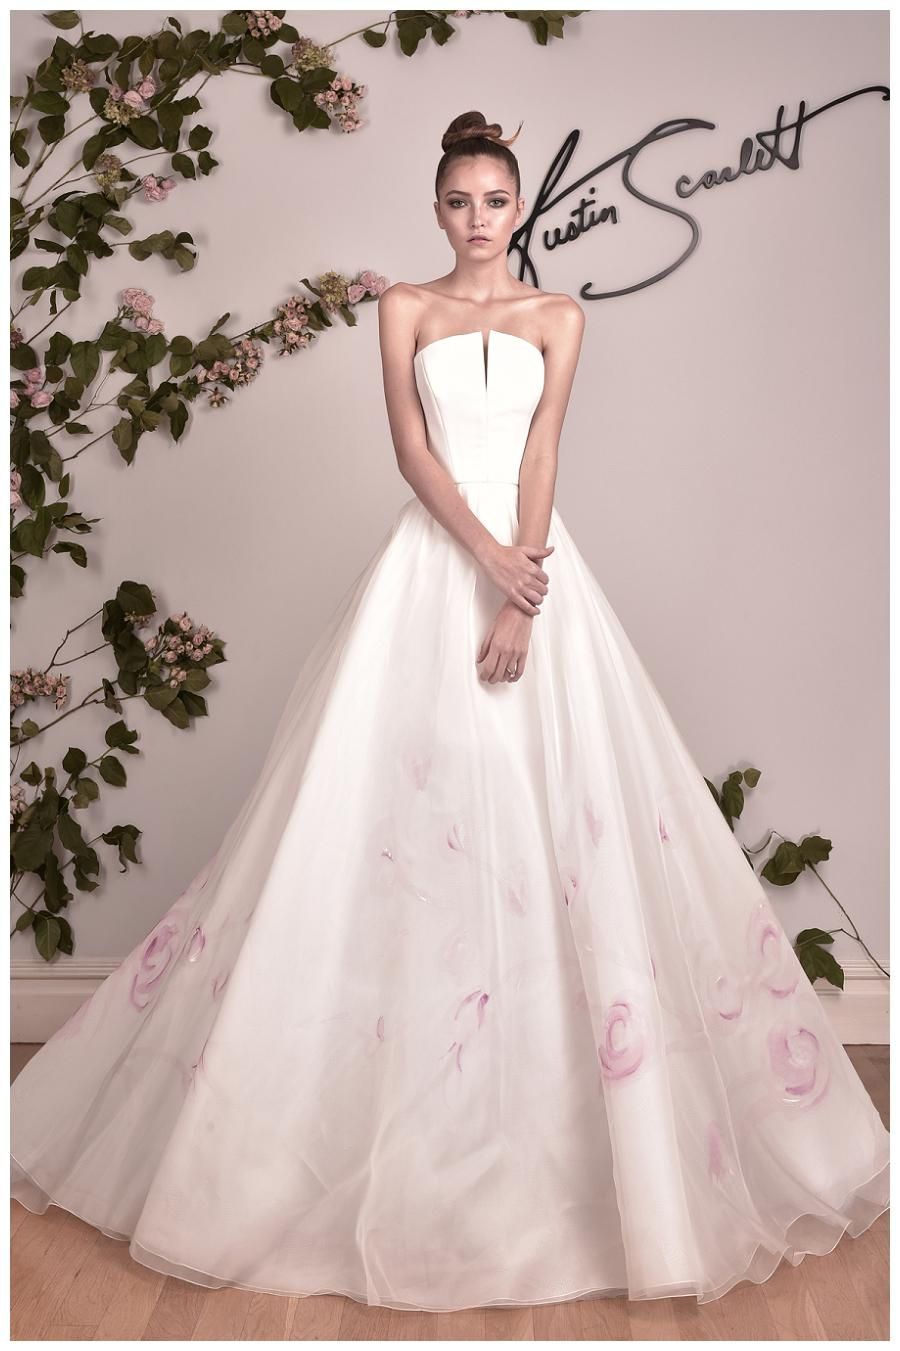 Wedding Dress From The Austin Scarlett Fall 2016 Collection Slip On Minerva Pink